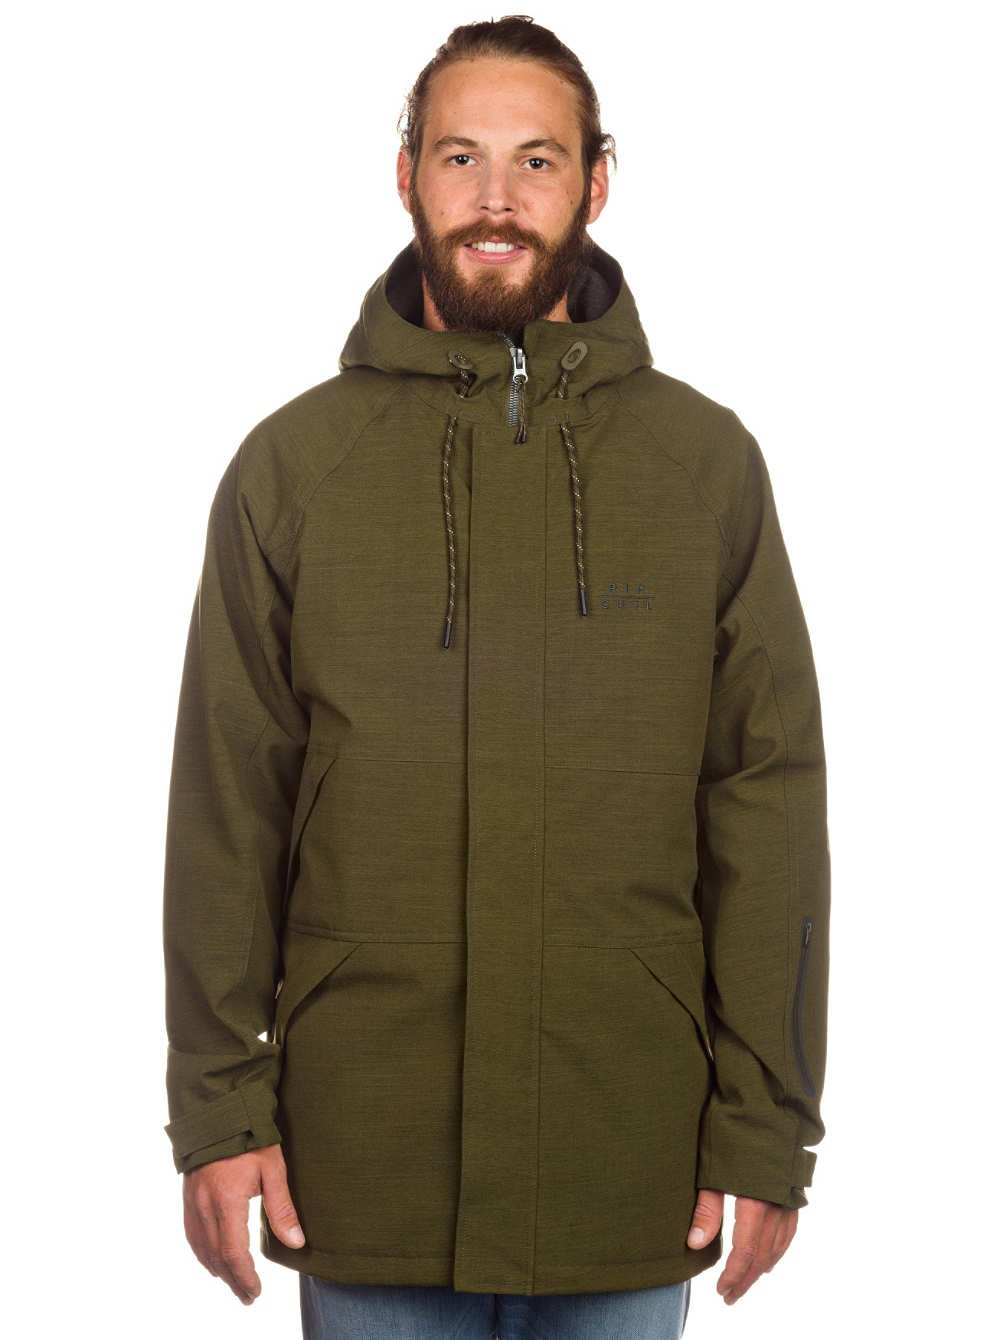 Rip Curl Herren Hot Box Anti Jacket günstig kaufen